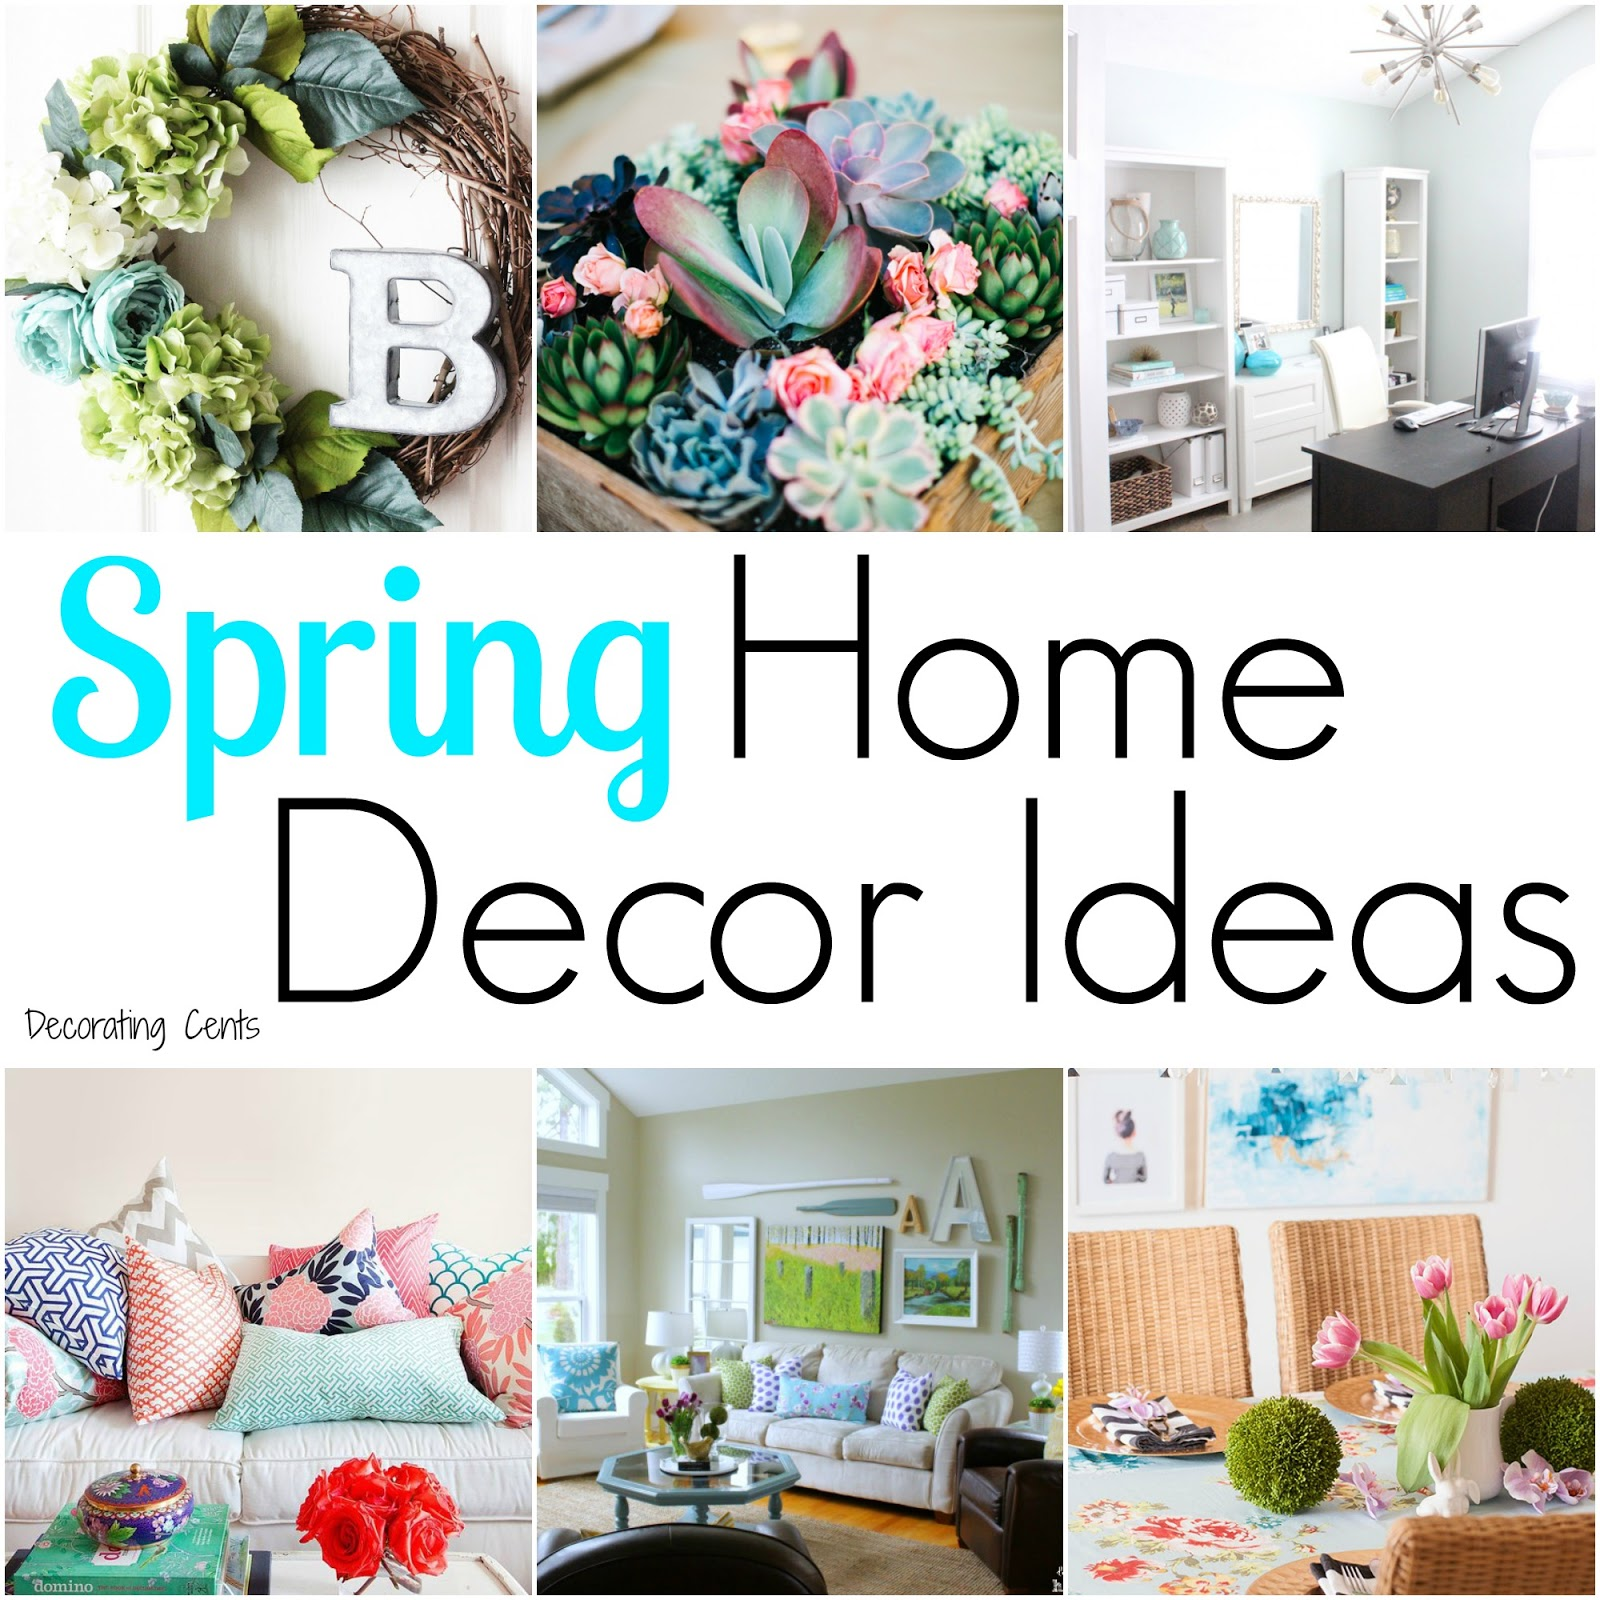 Decorating cents spring home decor ideas for Accessories decoration